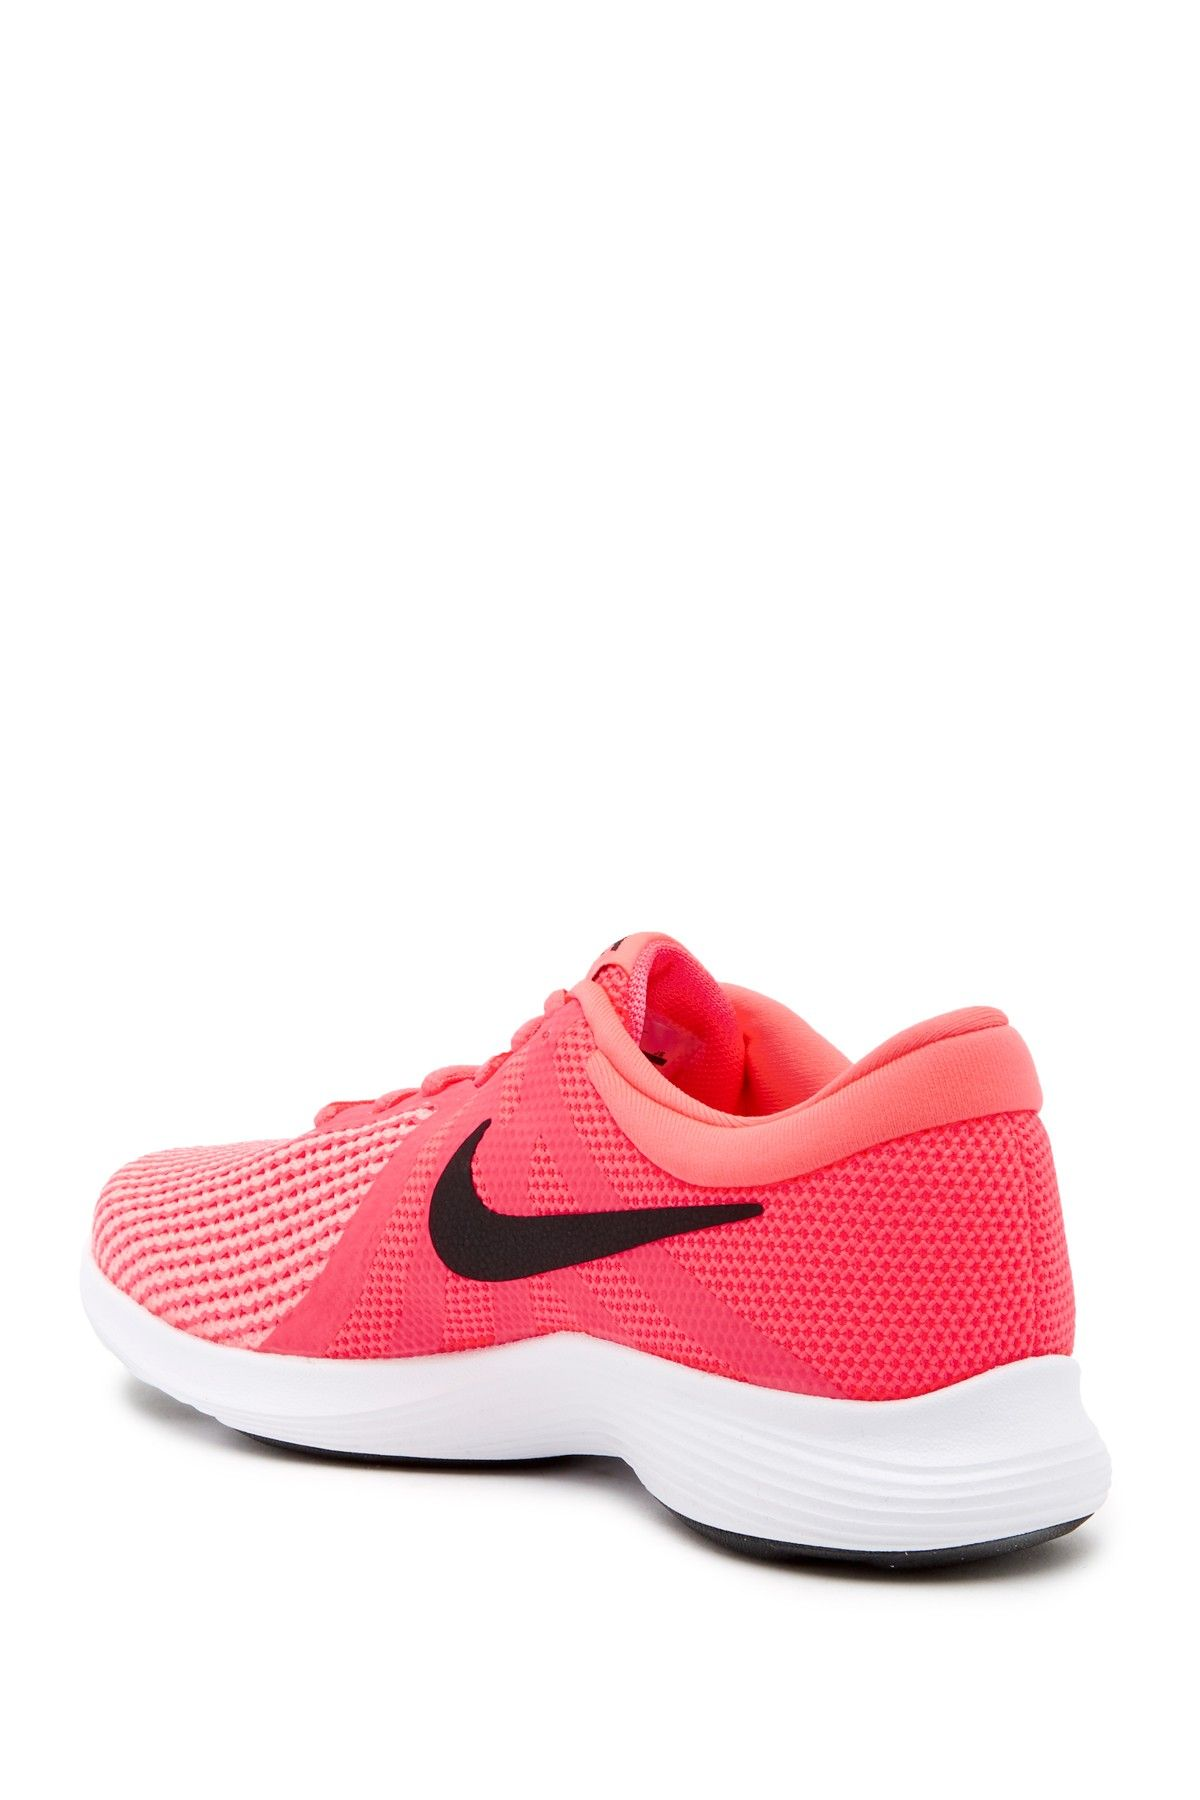 best website 86c41 63741 Nike - Revolution 4 Running Sneaker is now 22-43% off. Free Shipping on  orders over  100.